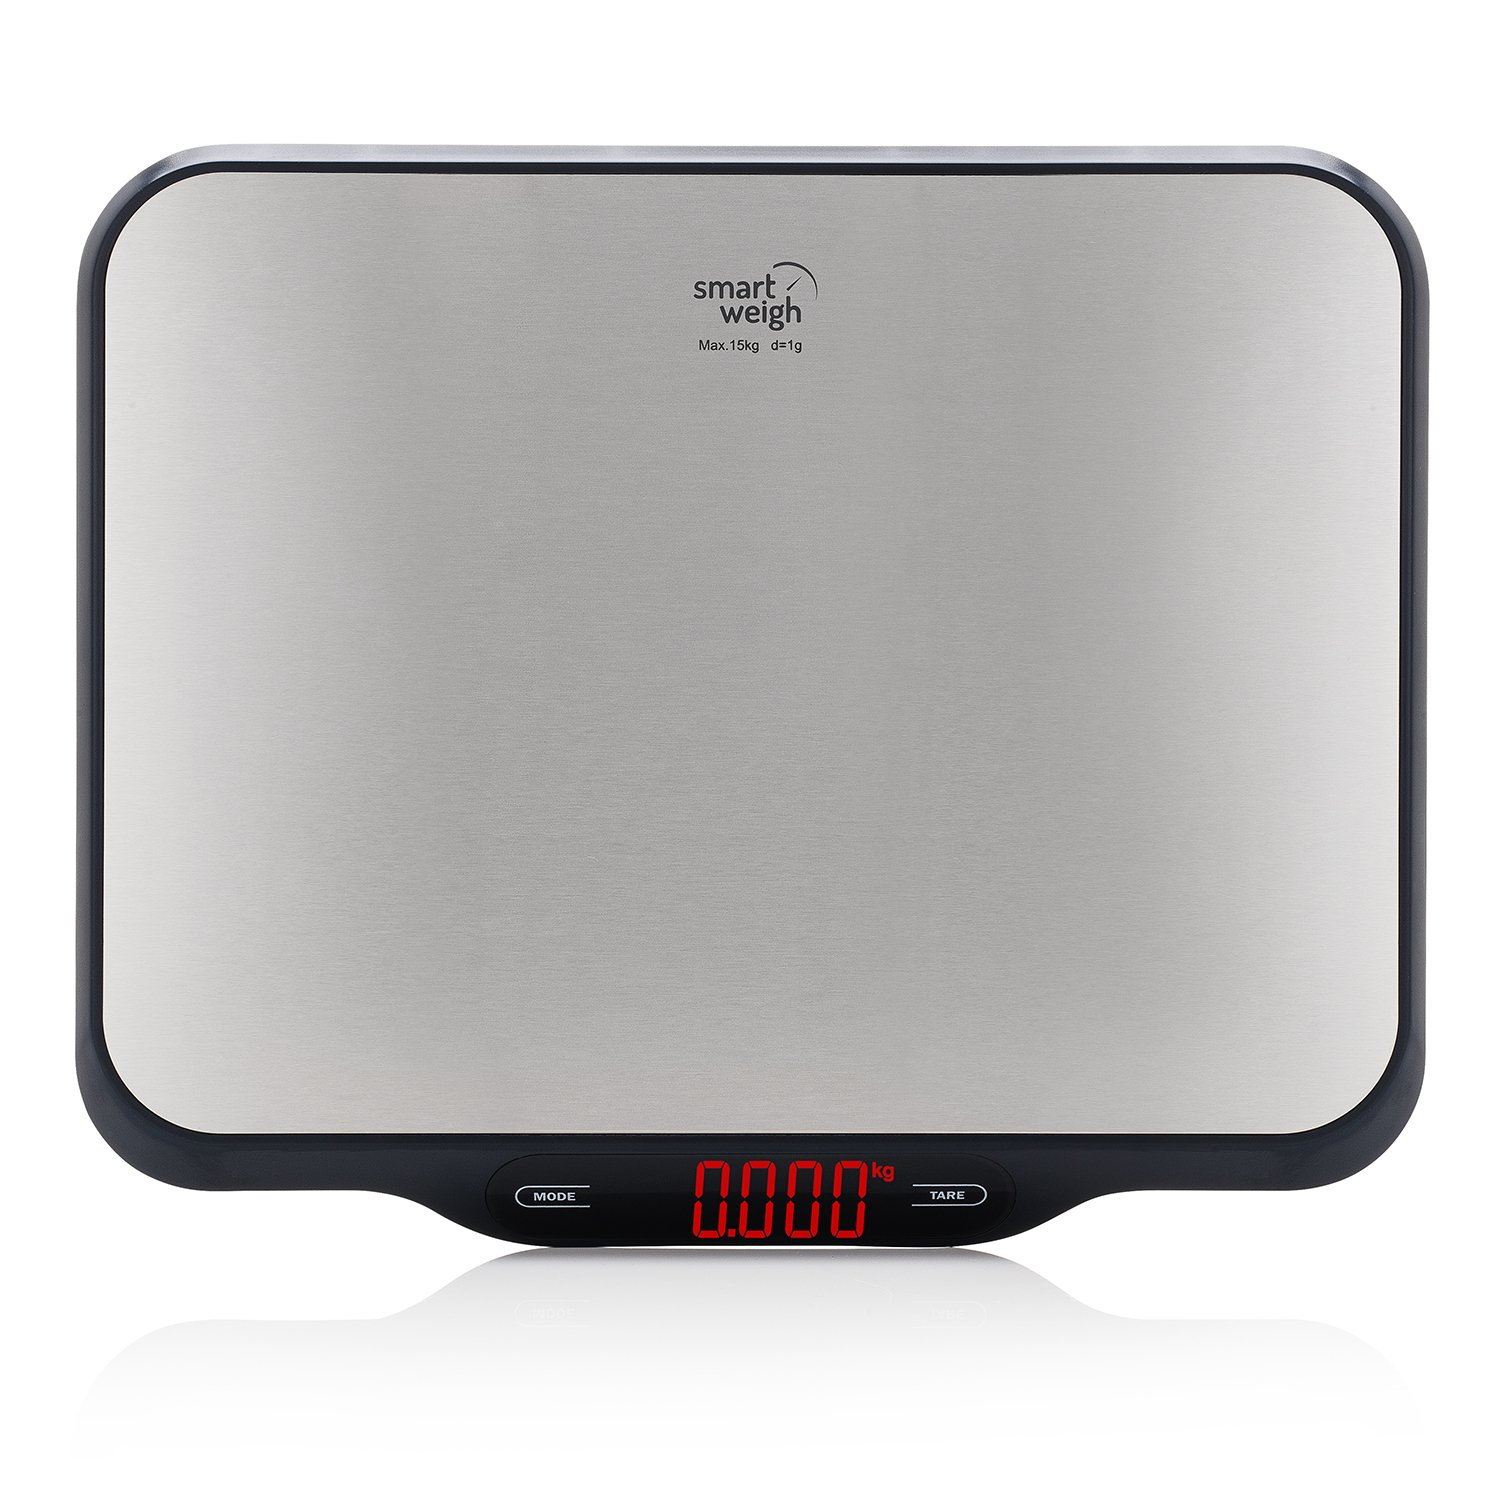 Smart Weigh Multifunctional USPS Postal Scale SW-PL22